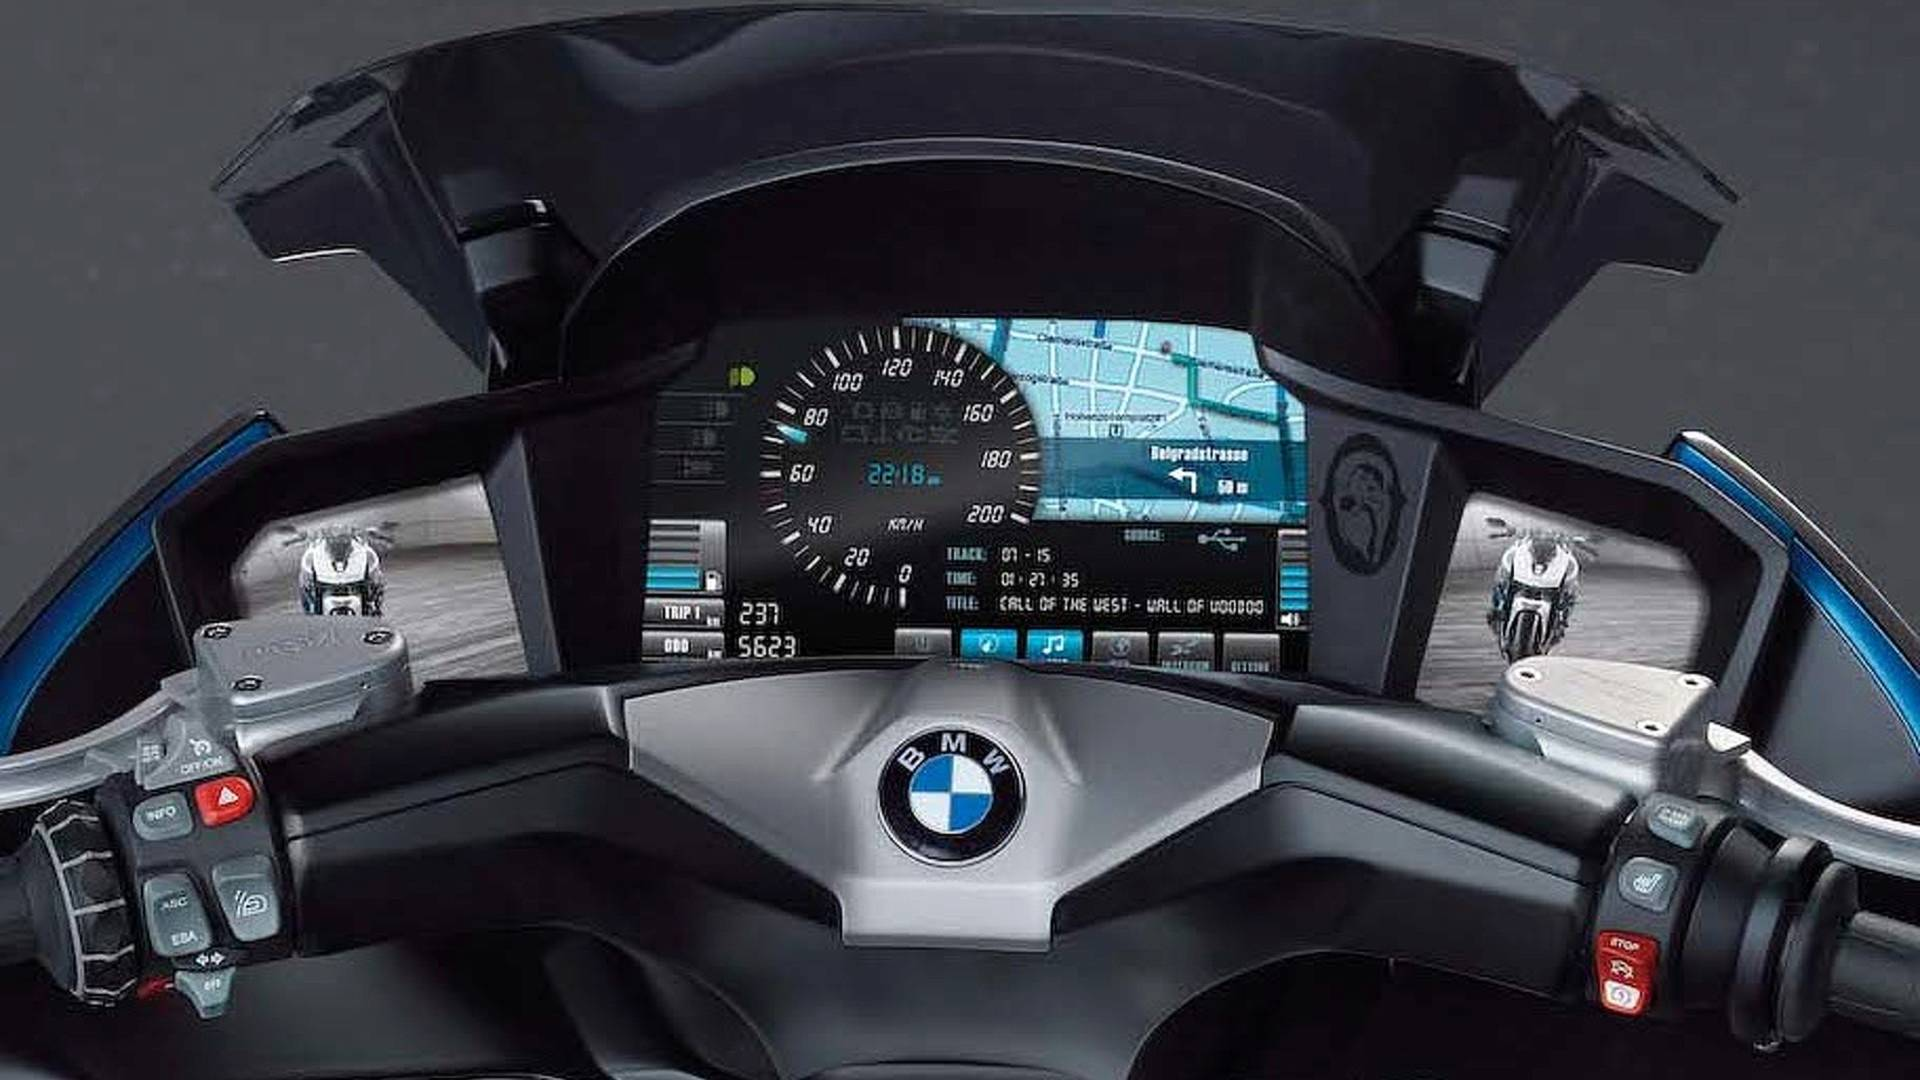 The neatest thing about the BMW Concept C